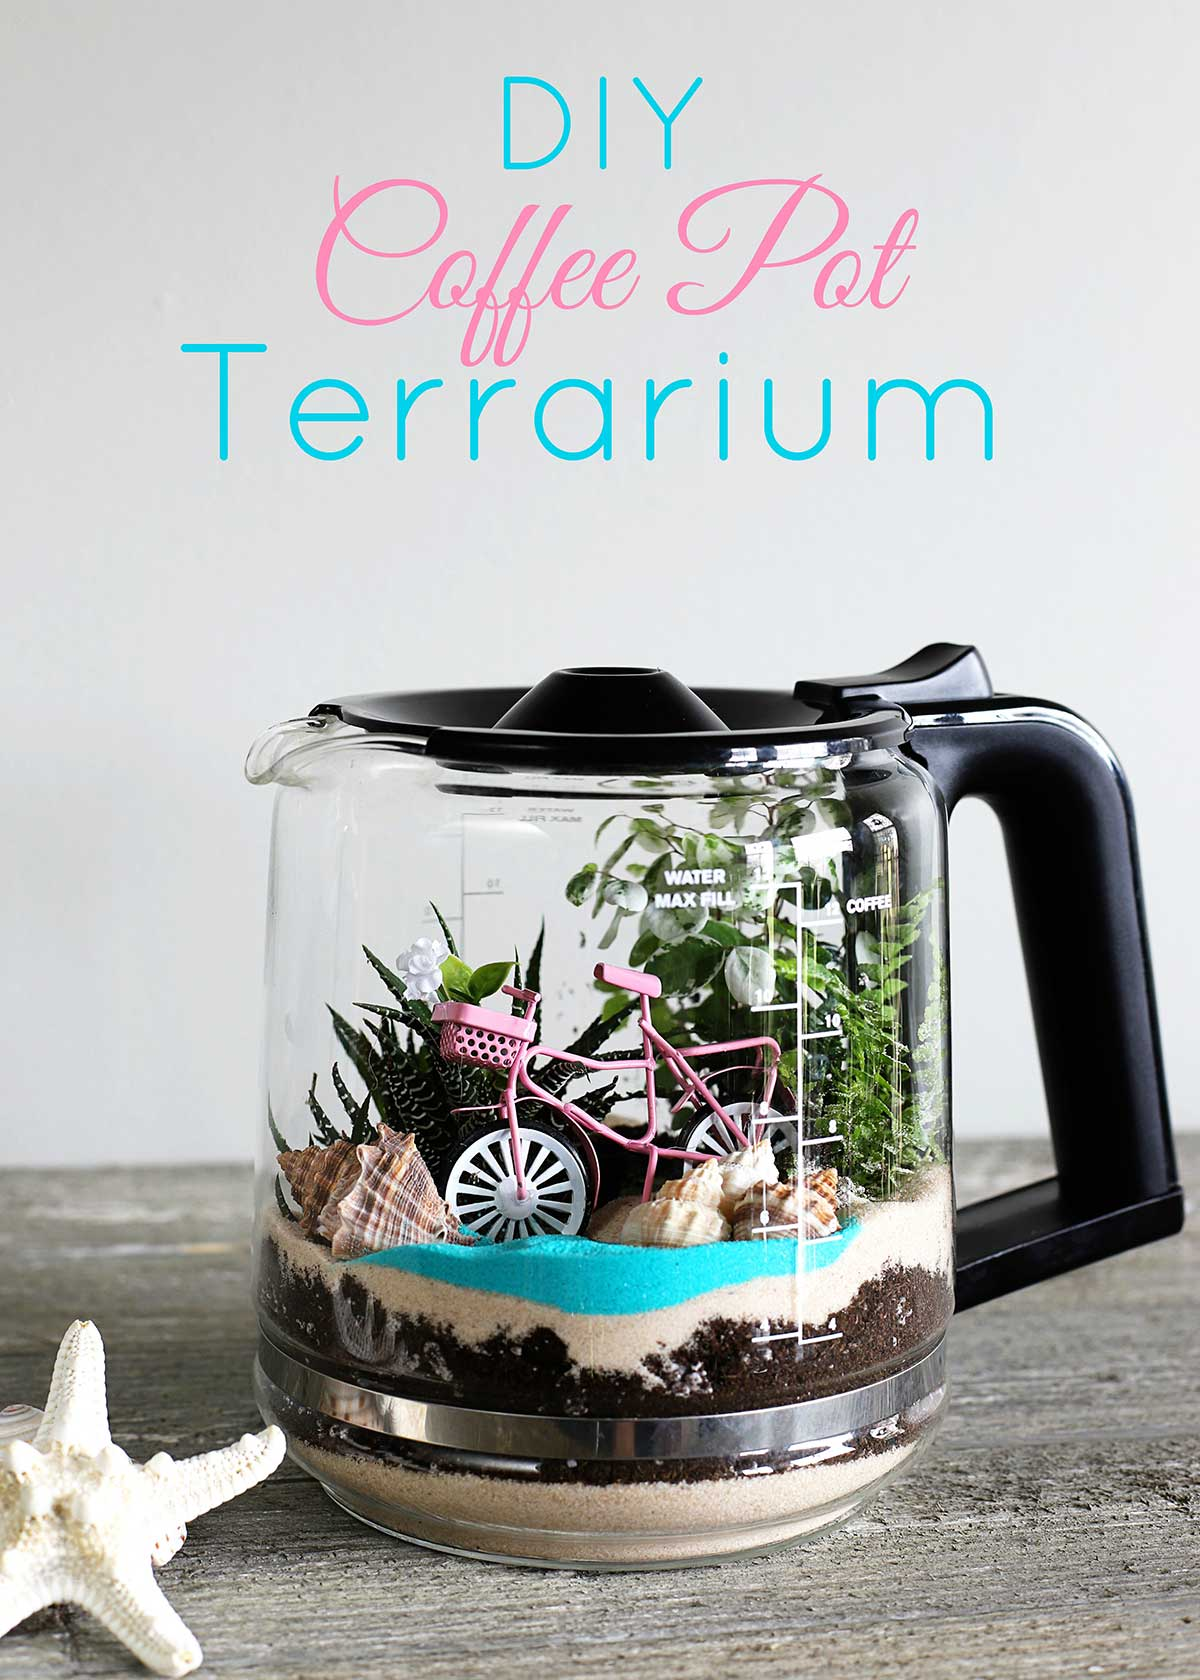 Quick and easy DIY coffee pot terrarium tutorial.